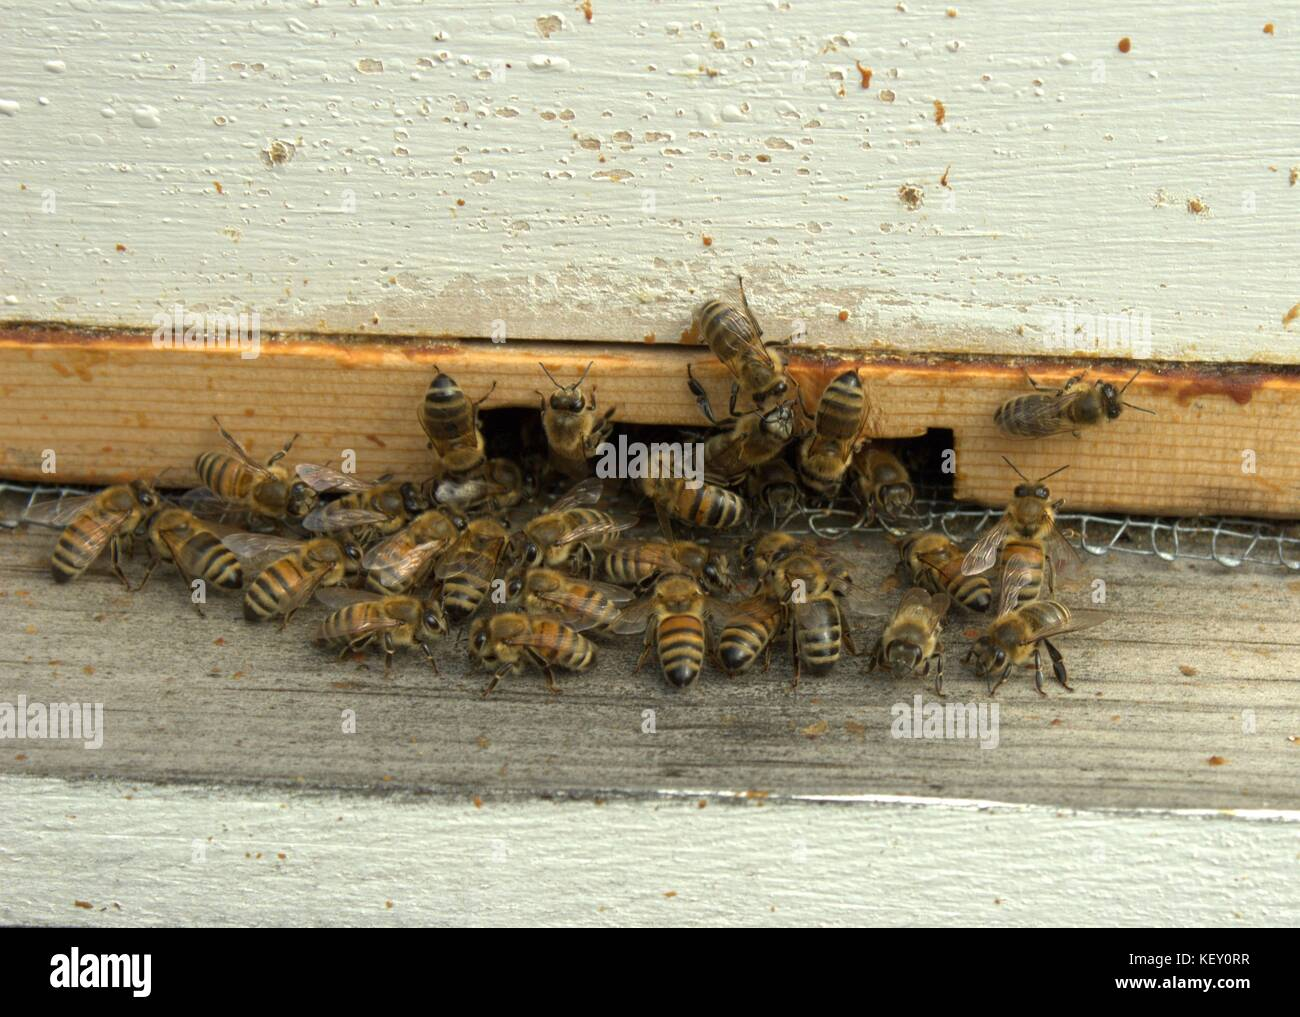 Honey Bees Gather At Their Hive Entrance - Stock Image